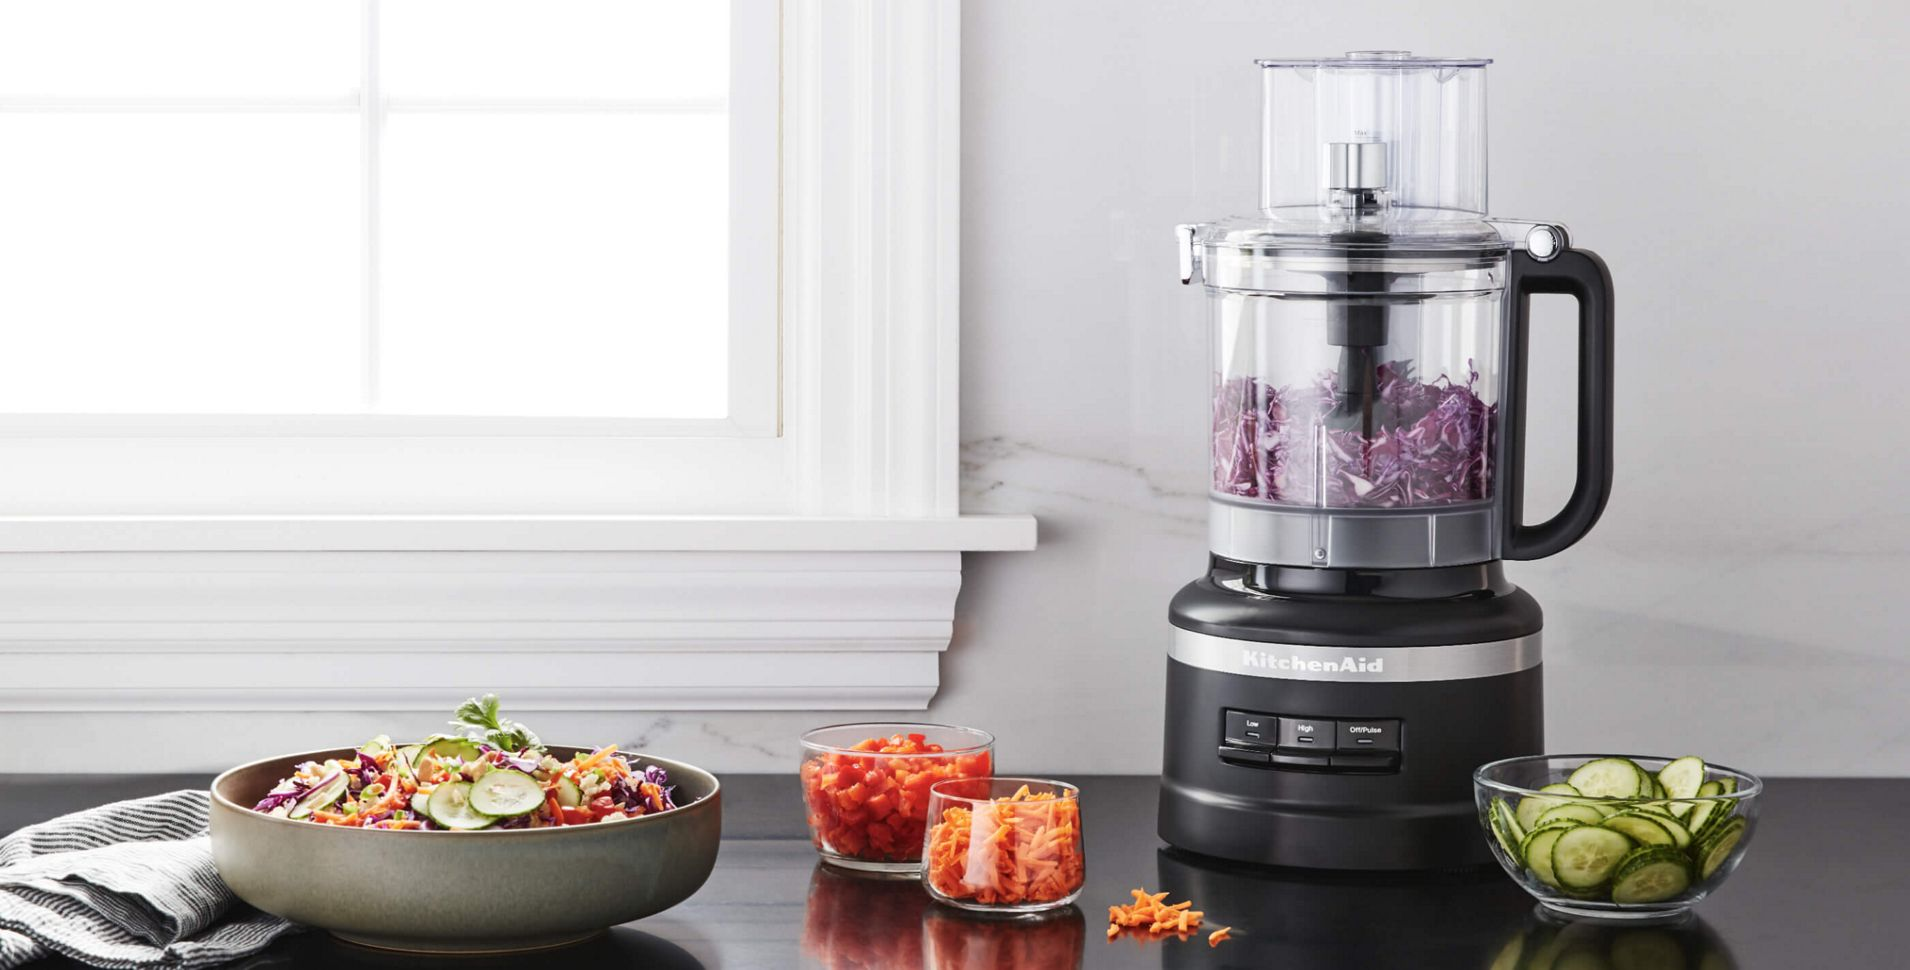 A Contour Silver KitchenAid® food chopper holding various ingredients and seasonings.